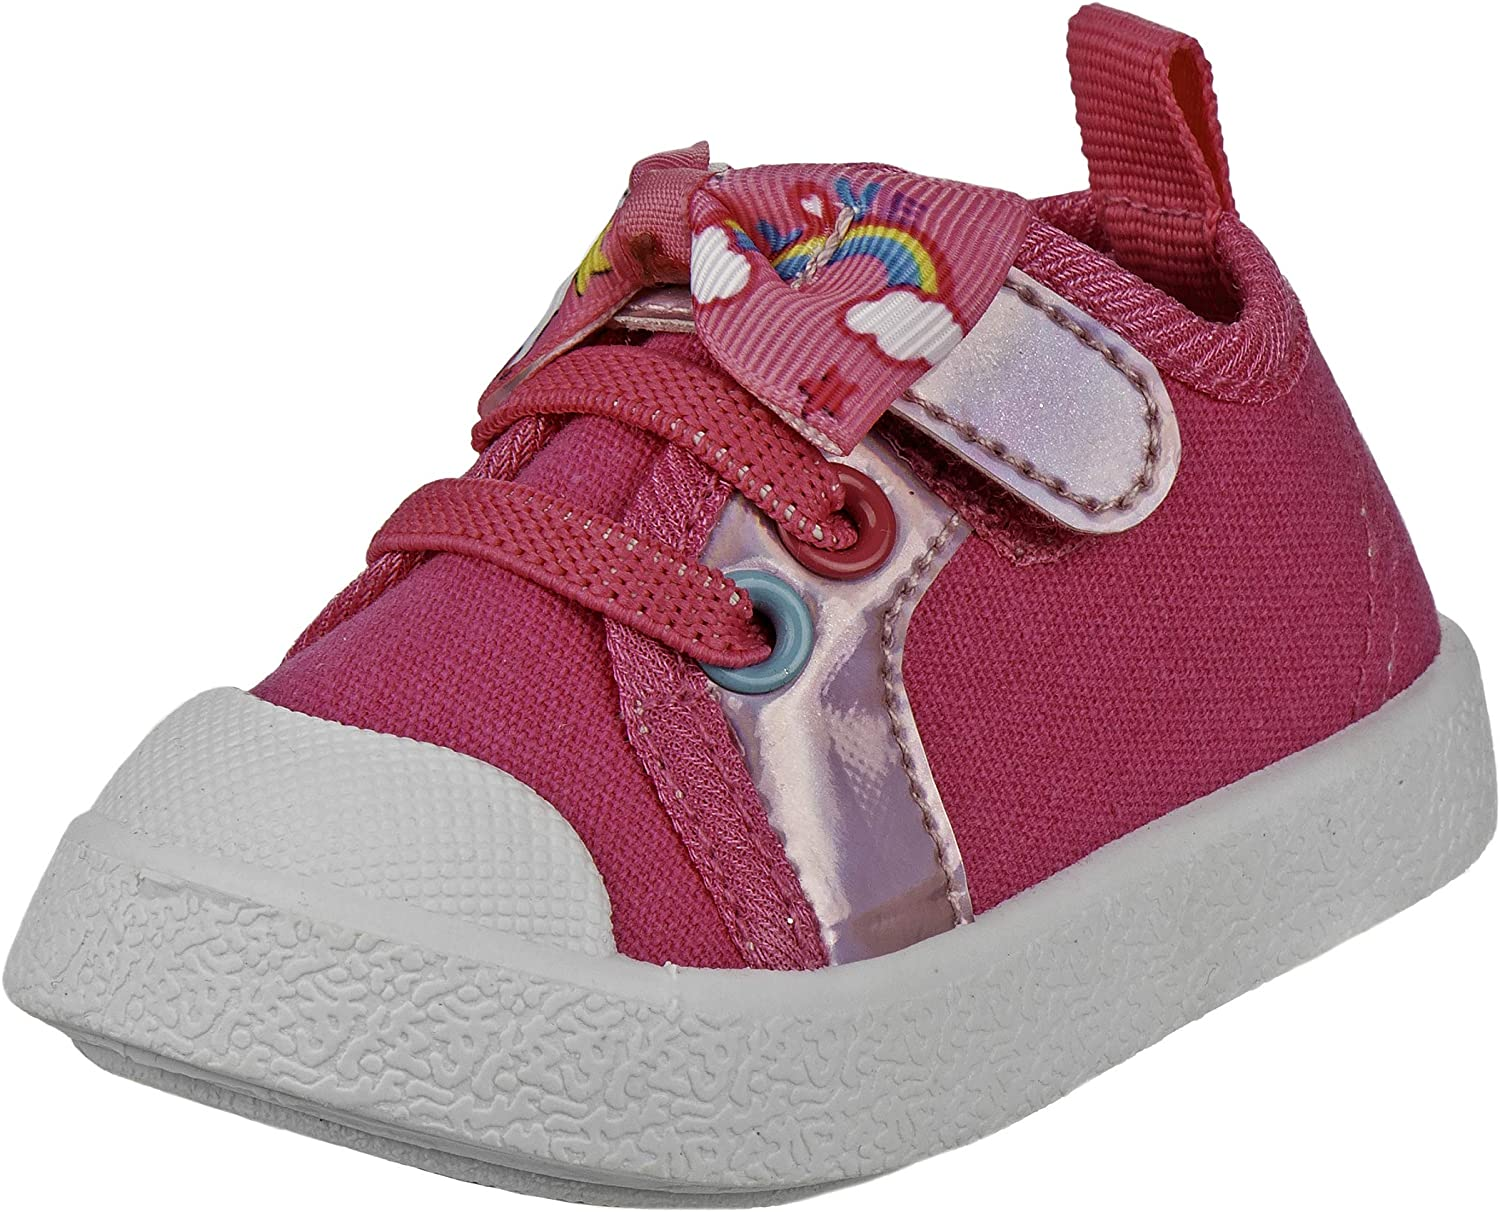 Laura Ashley Baby Girls' Shoes - Infa Sneakers Washington Mall Rainbow Pink New mail order and